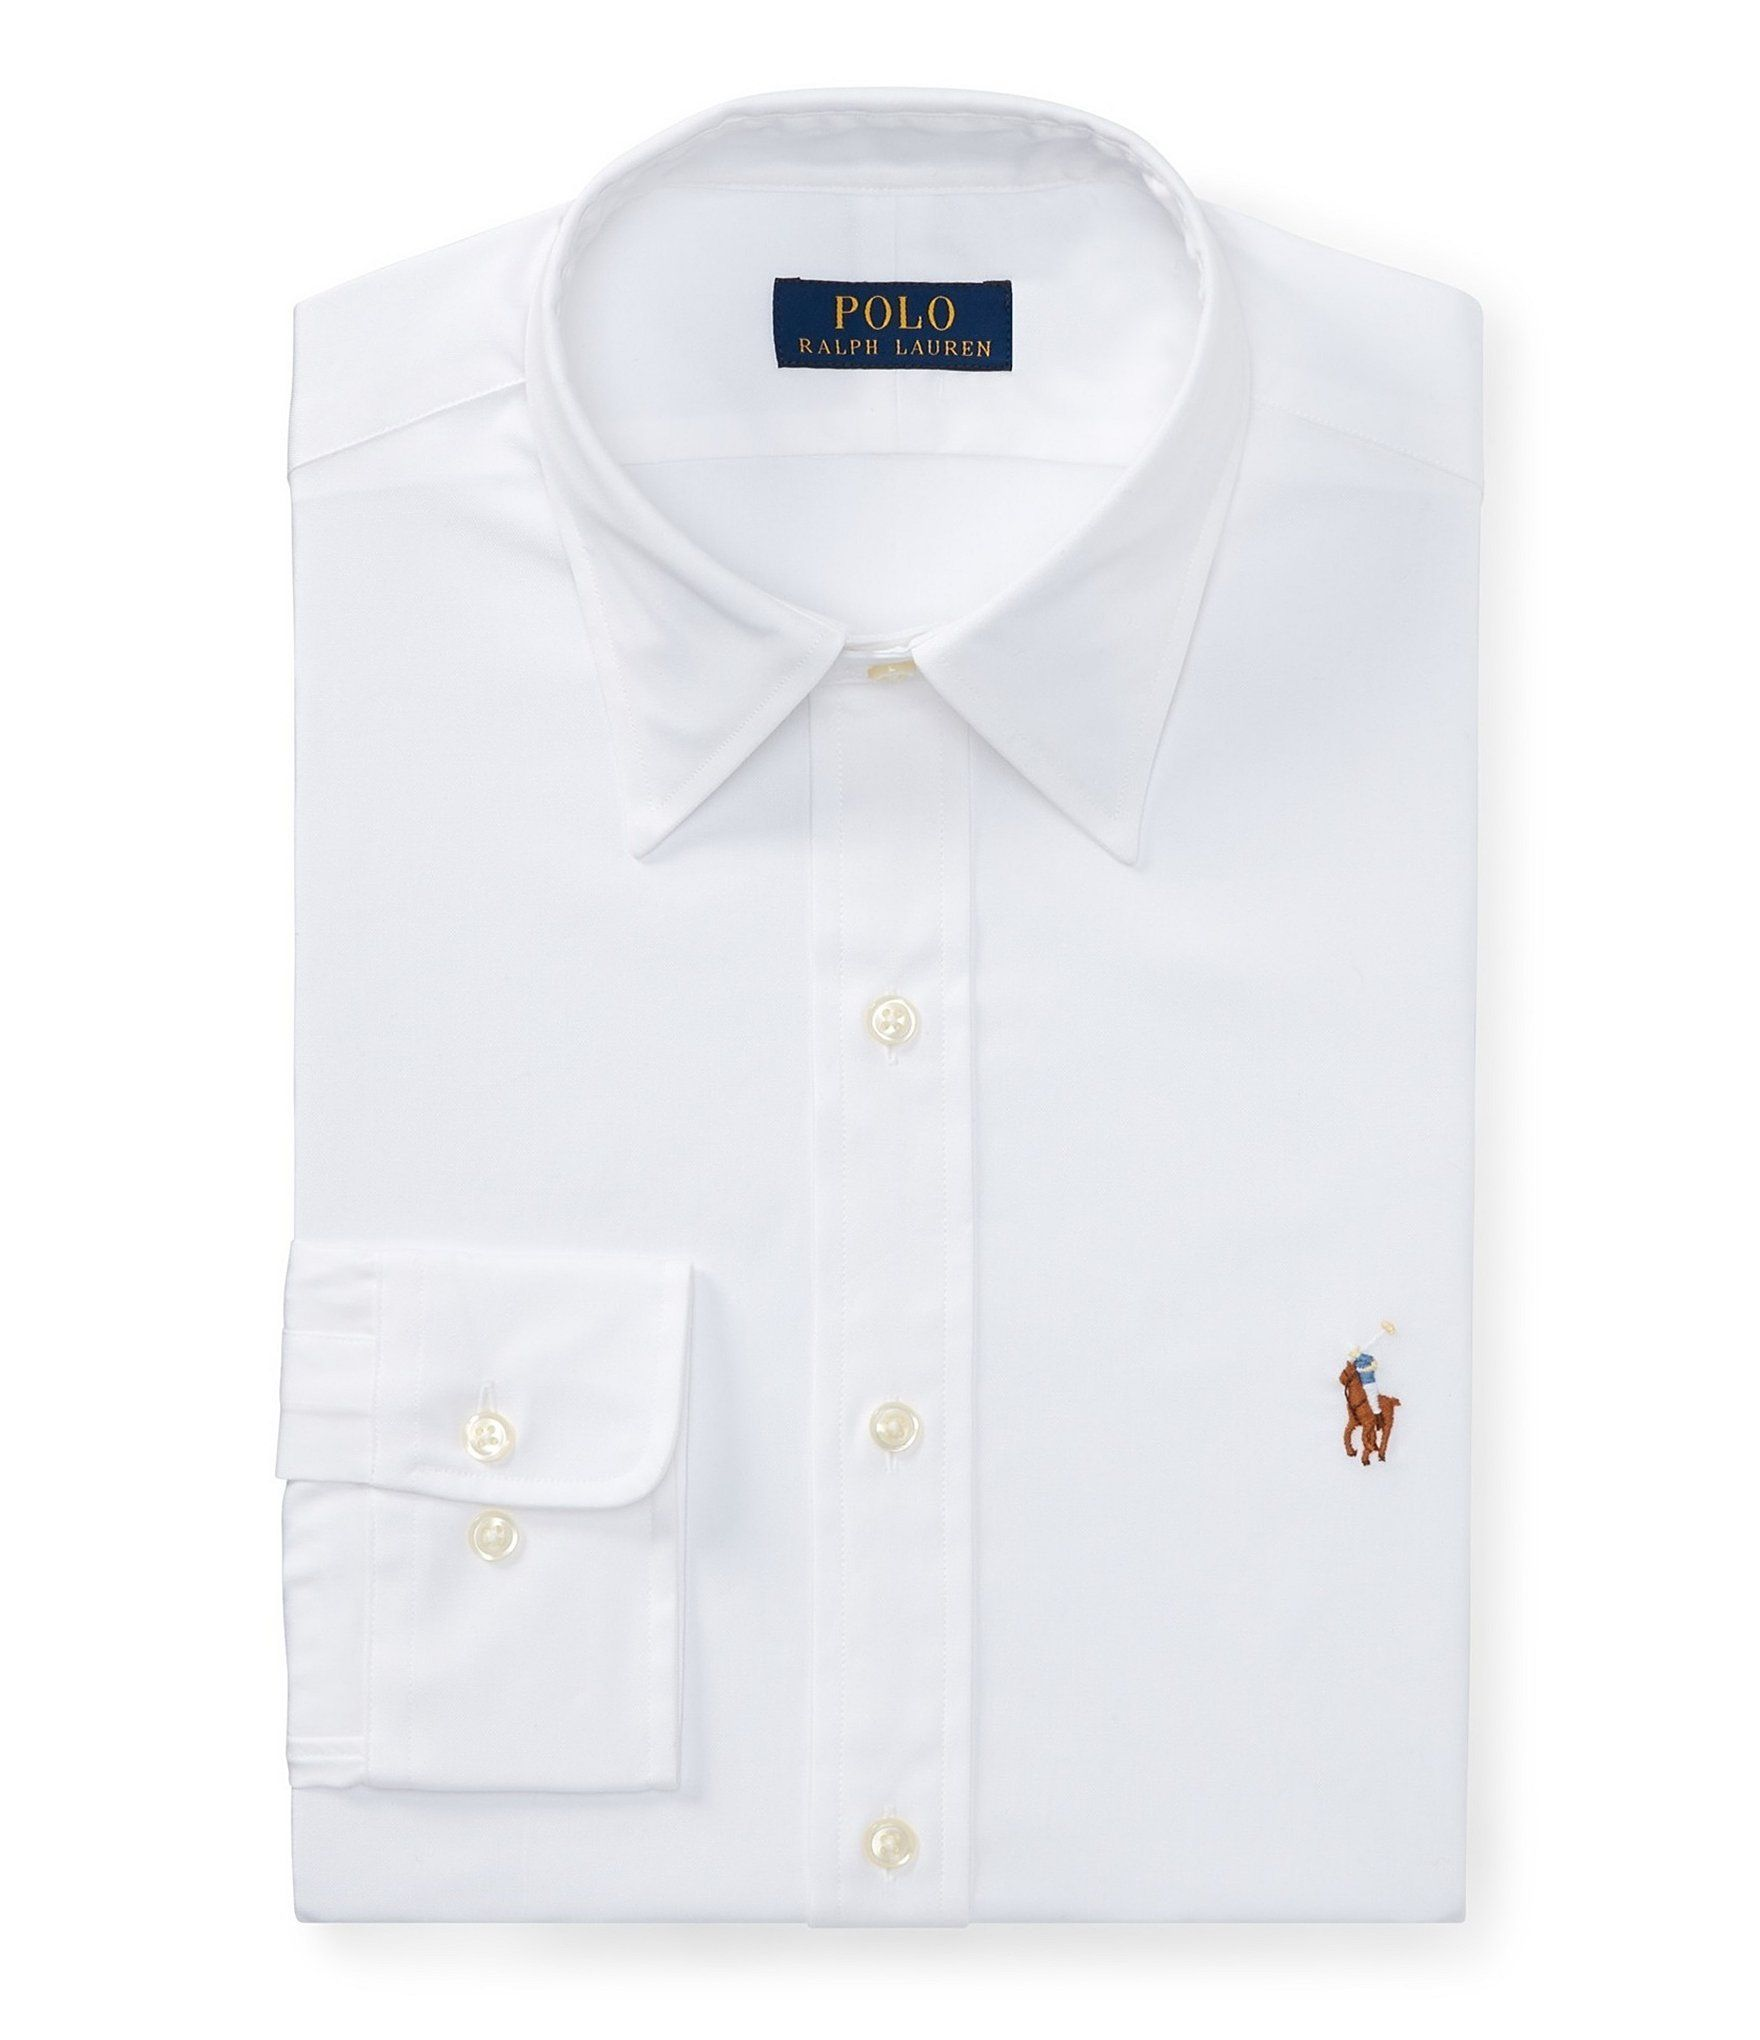 Polo Ralph Lauren ClassicFit Point Collar Solid Oxford Dress Shirt  Dillard   polo Ralph Lauren ClassicFit Point Collar Solid Oxford Dress Shirt   Dillards a37998b1a31da